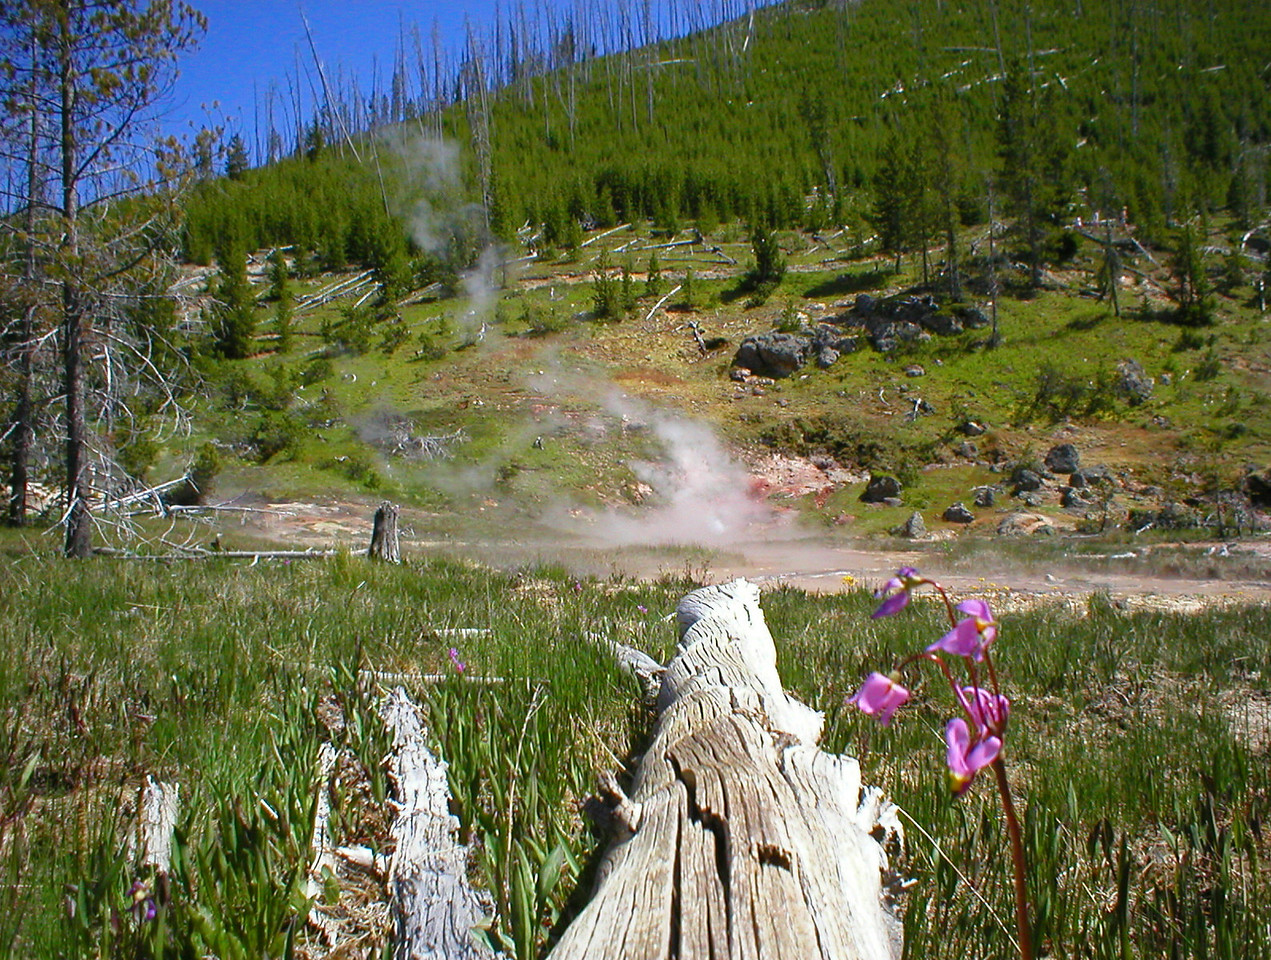 Geysers are everywhere. I imagine what ancient people must have thought the first time coming on to this place.